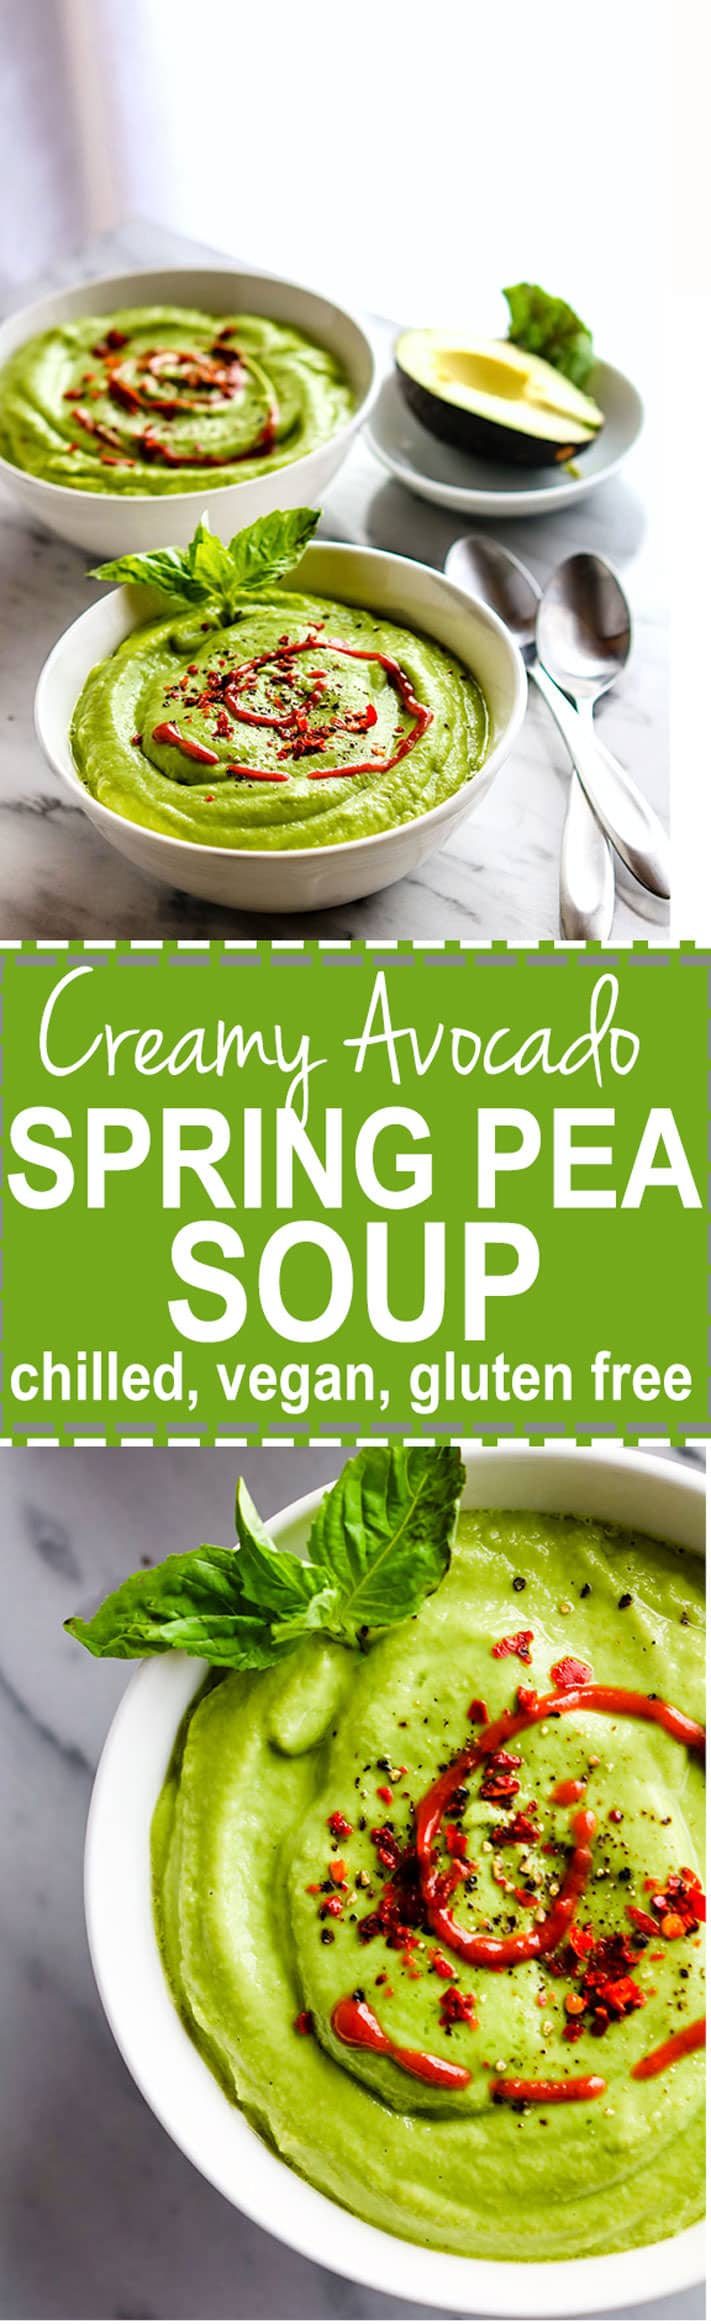 Vegan Chilled Artichoke Avocado Spring Pea Soup. Super Creamy Raw Spring Pea Soup loaded with extra veggies, tons of flavor, and packed full of nourishment